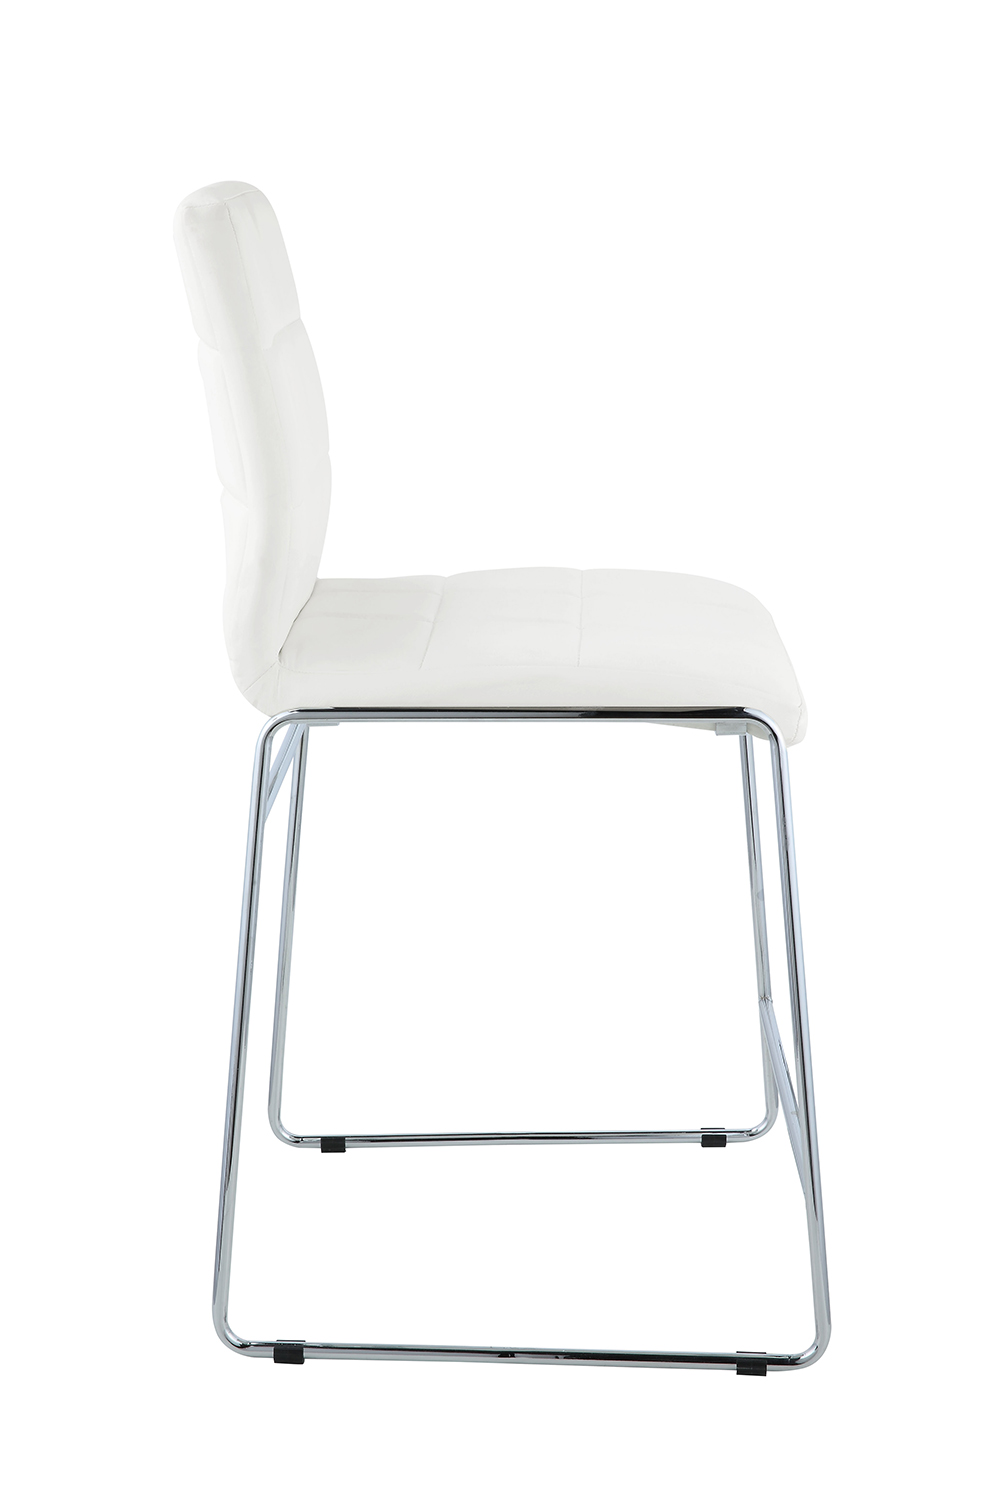 Acme Gordie Sled Metal Shape Counter Height Chair - White Vinyl/Chrome